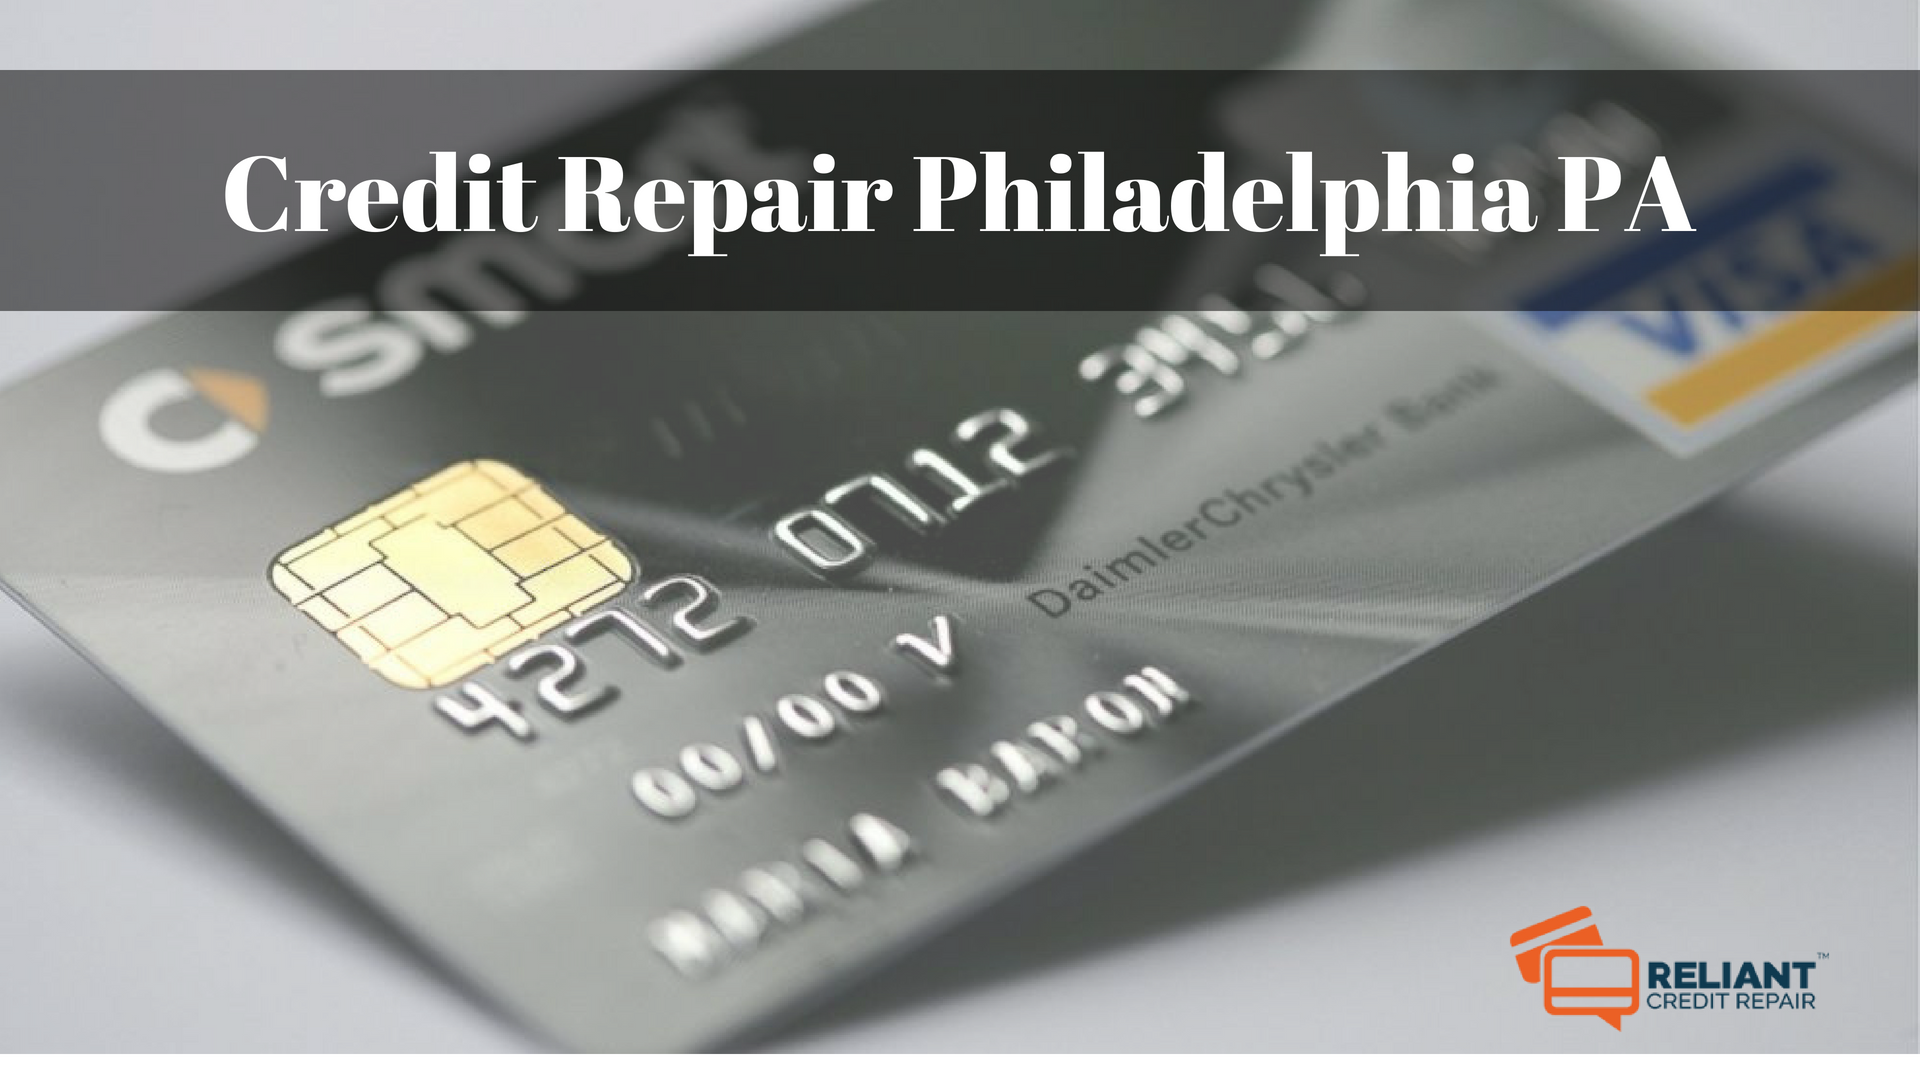 Credit Repair Philadelphia PA